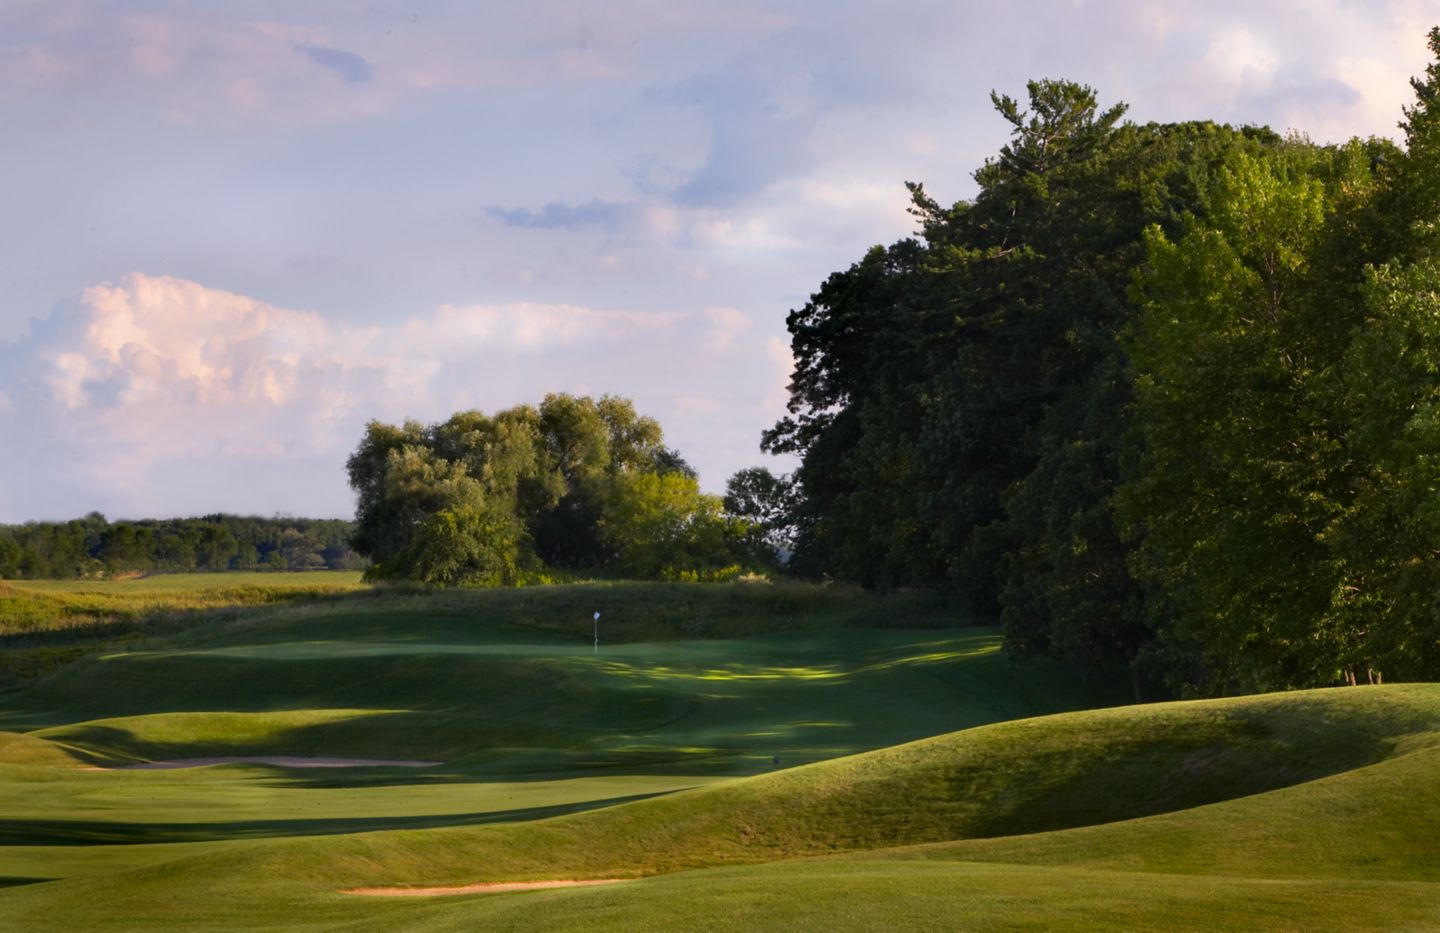 The near the green of the second hole of the Meadow Valleys course.